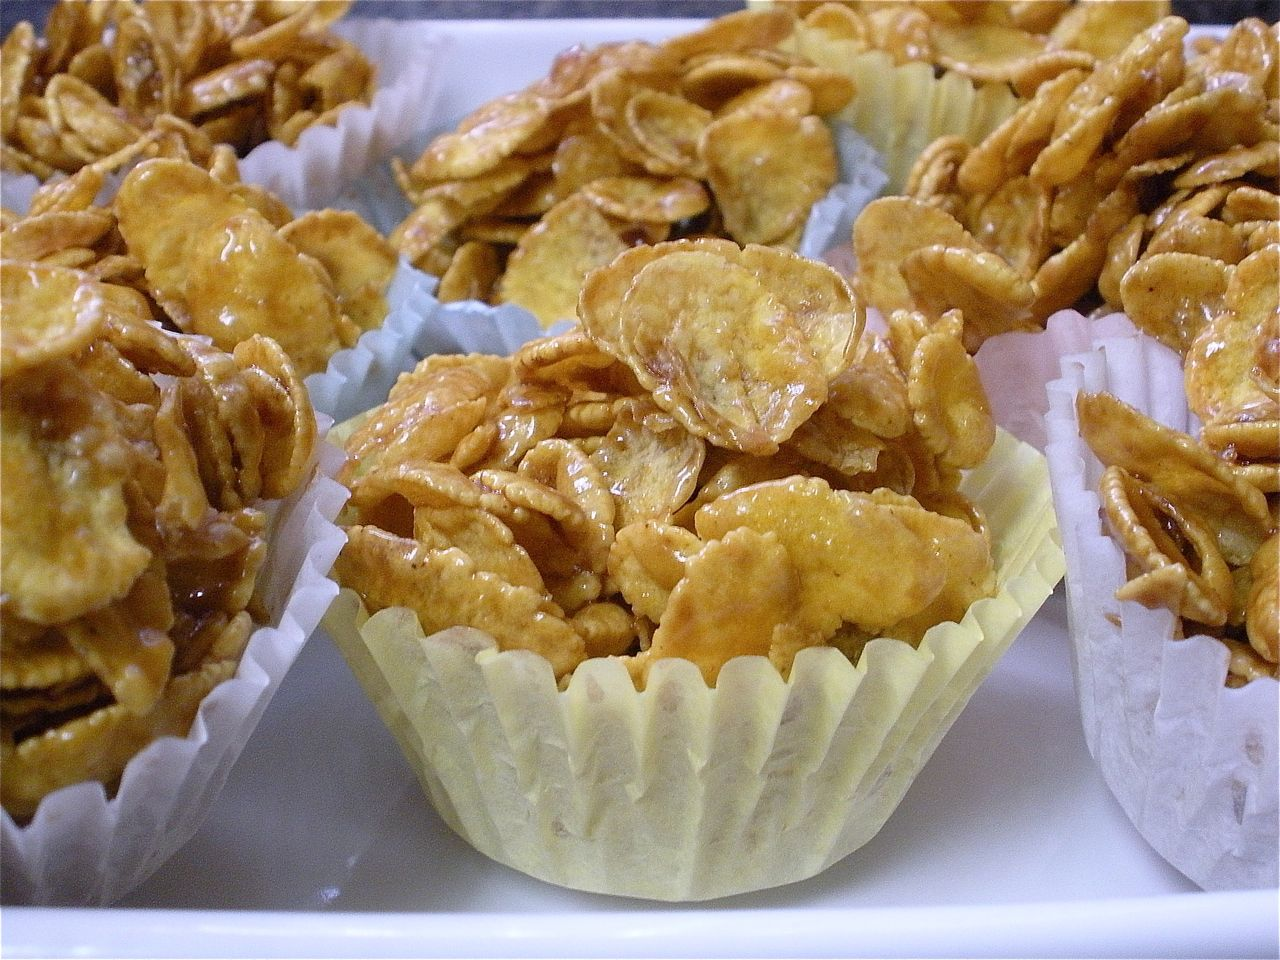 Crispy cakes recipe golden syrup